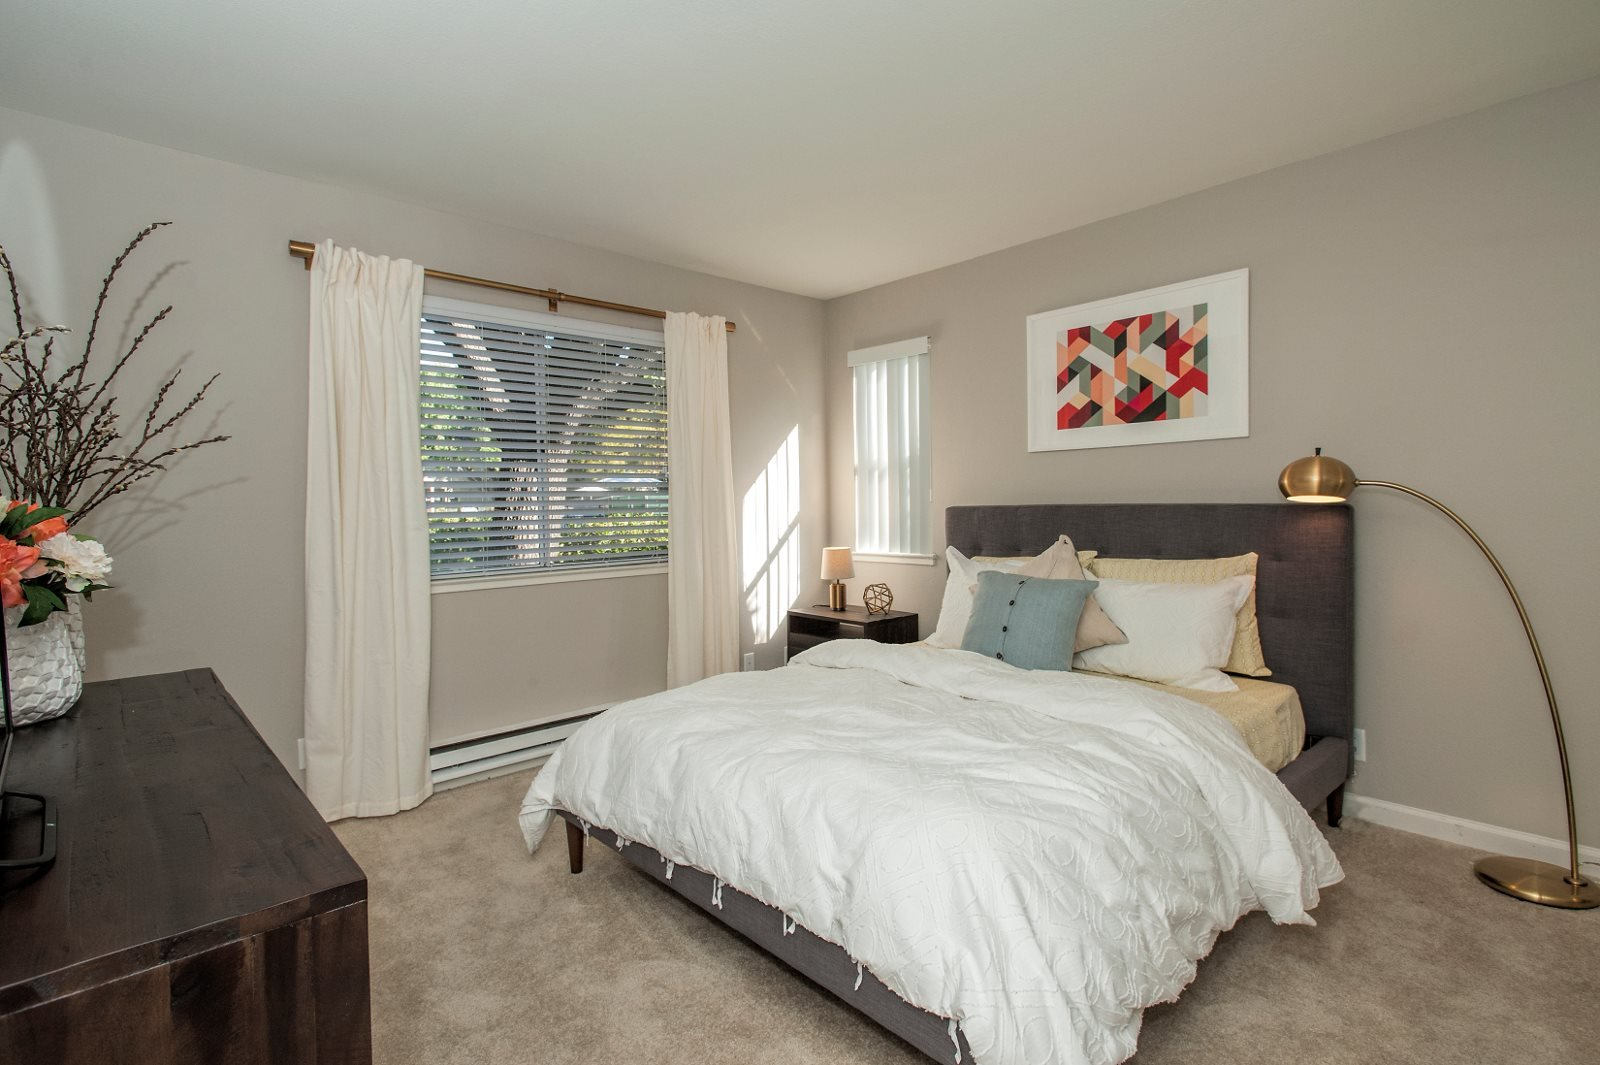 Live in Cozy Bedrooms at Sagemark, San Jose, CA 95136